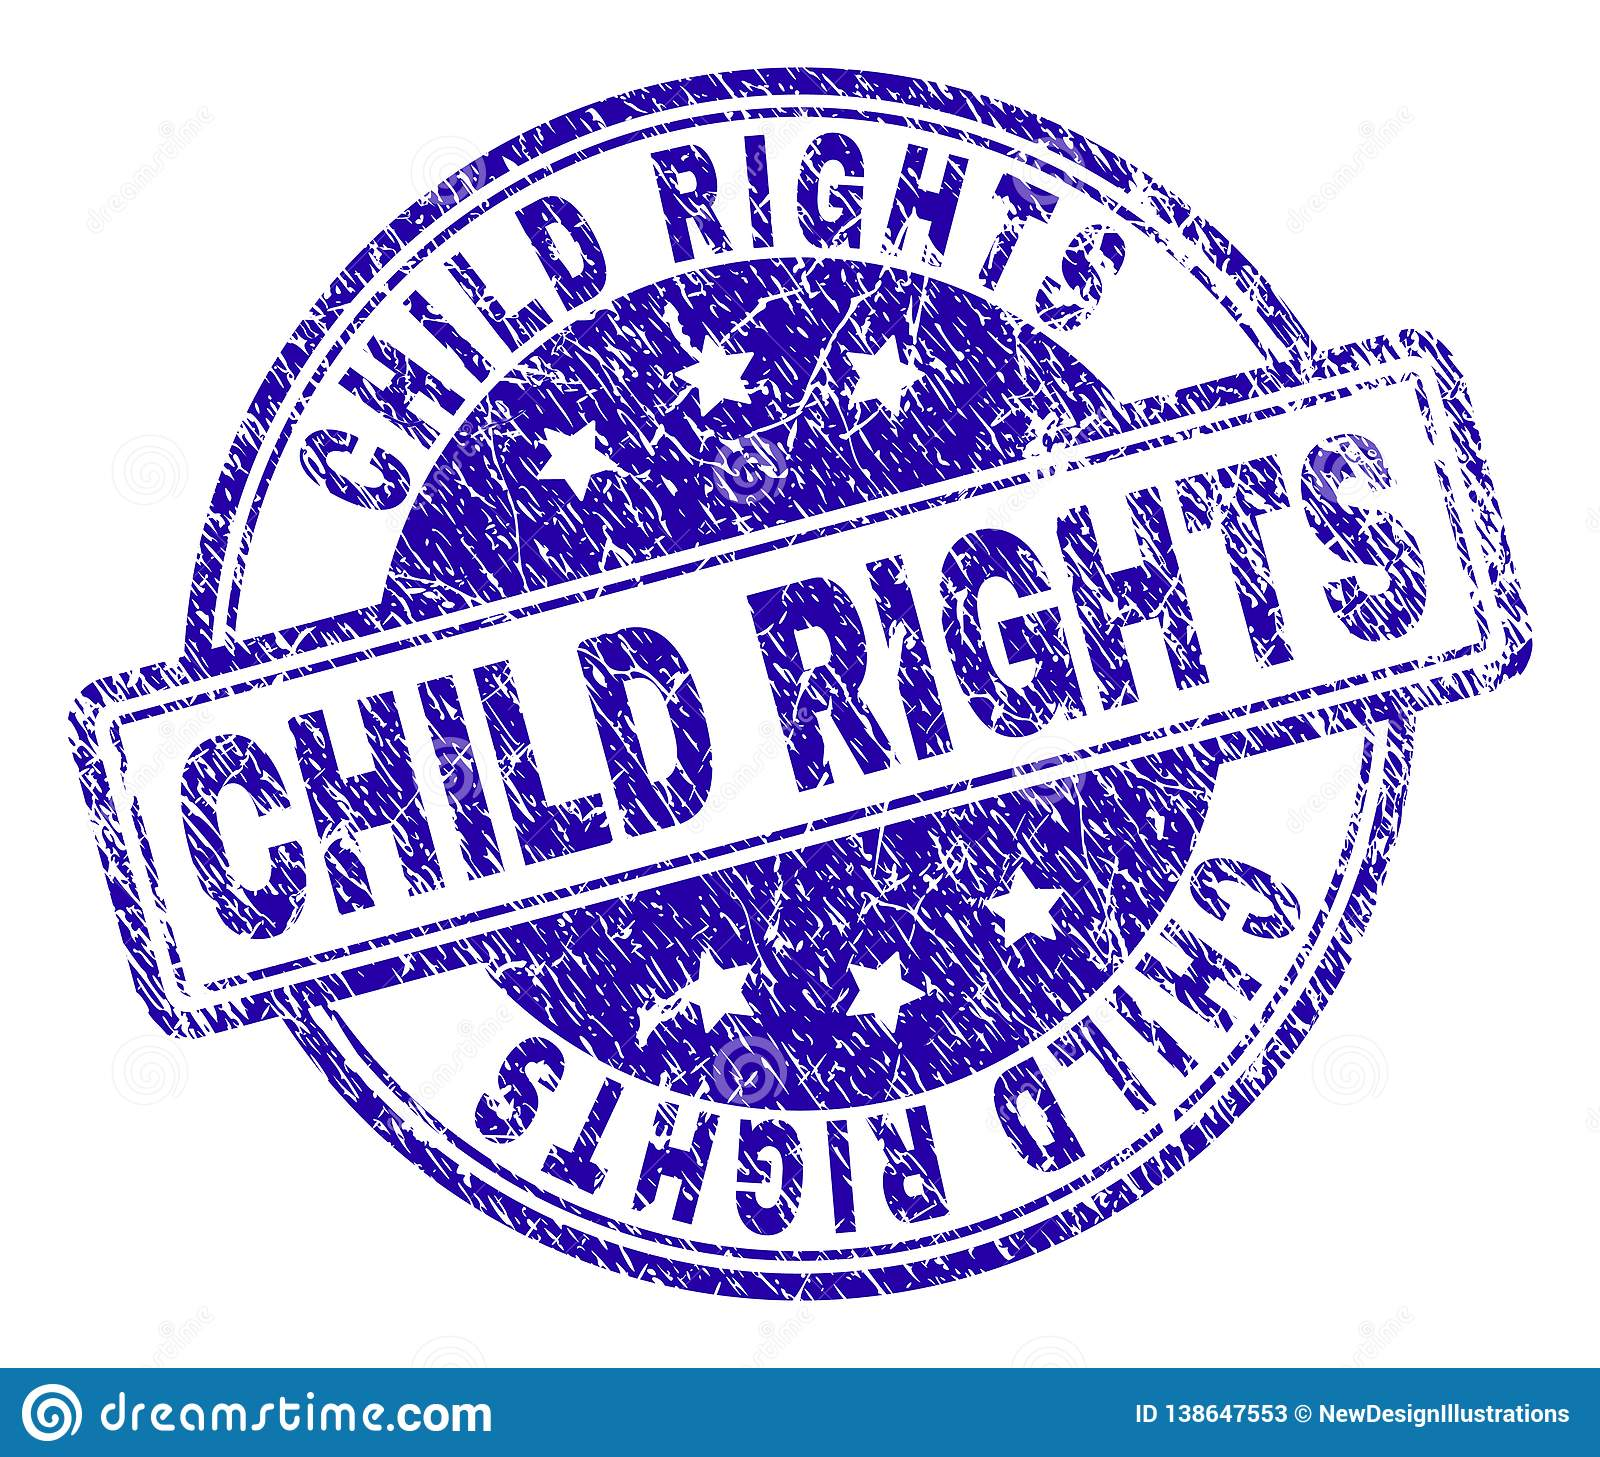 Playground Clipart Rights Child - Childhood Memories Clipart , Free  Transparent Clipart - ClipartKey